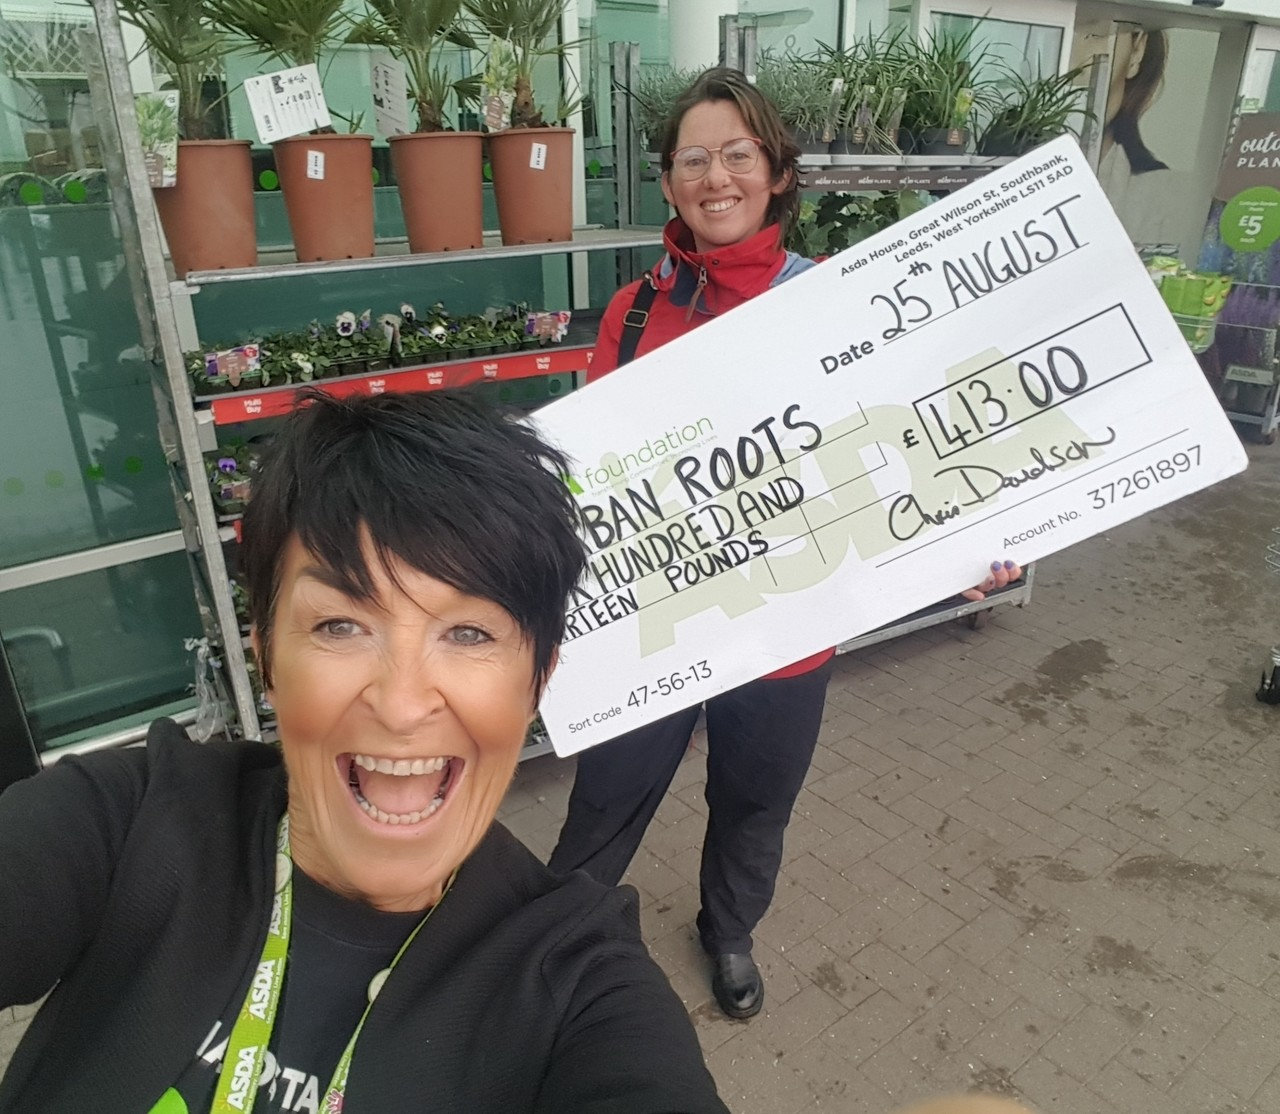 Healthy Holiday grant to Urban Roots | Asda Toryglen